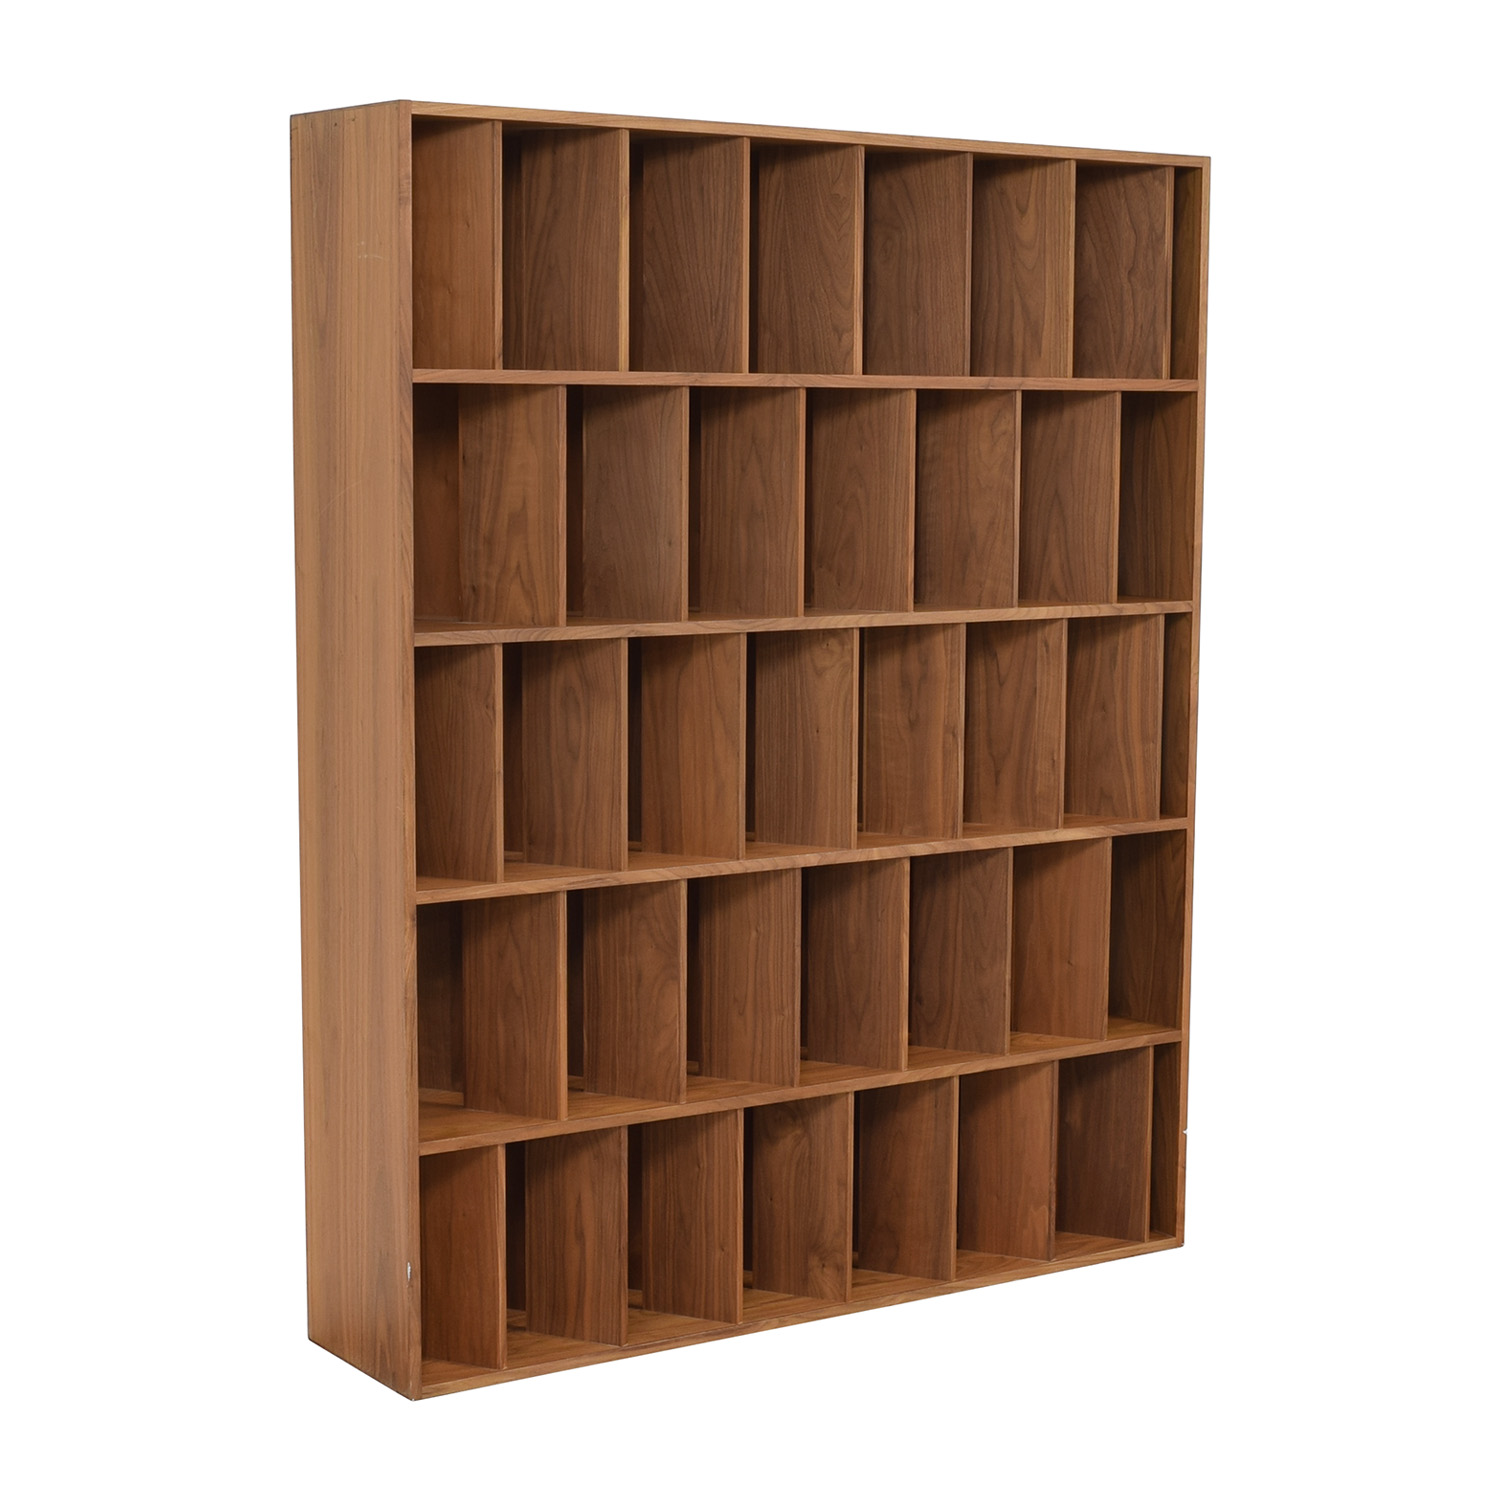 Room Divider Bookcase / Bookcases & Shelving